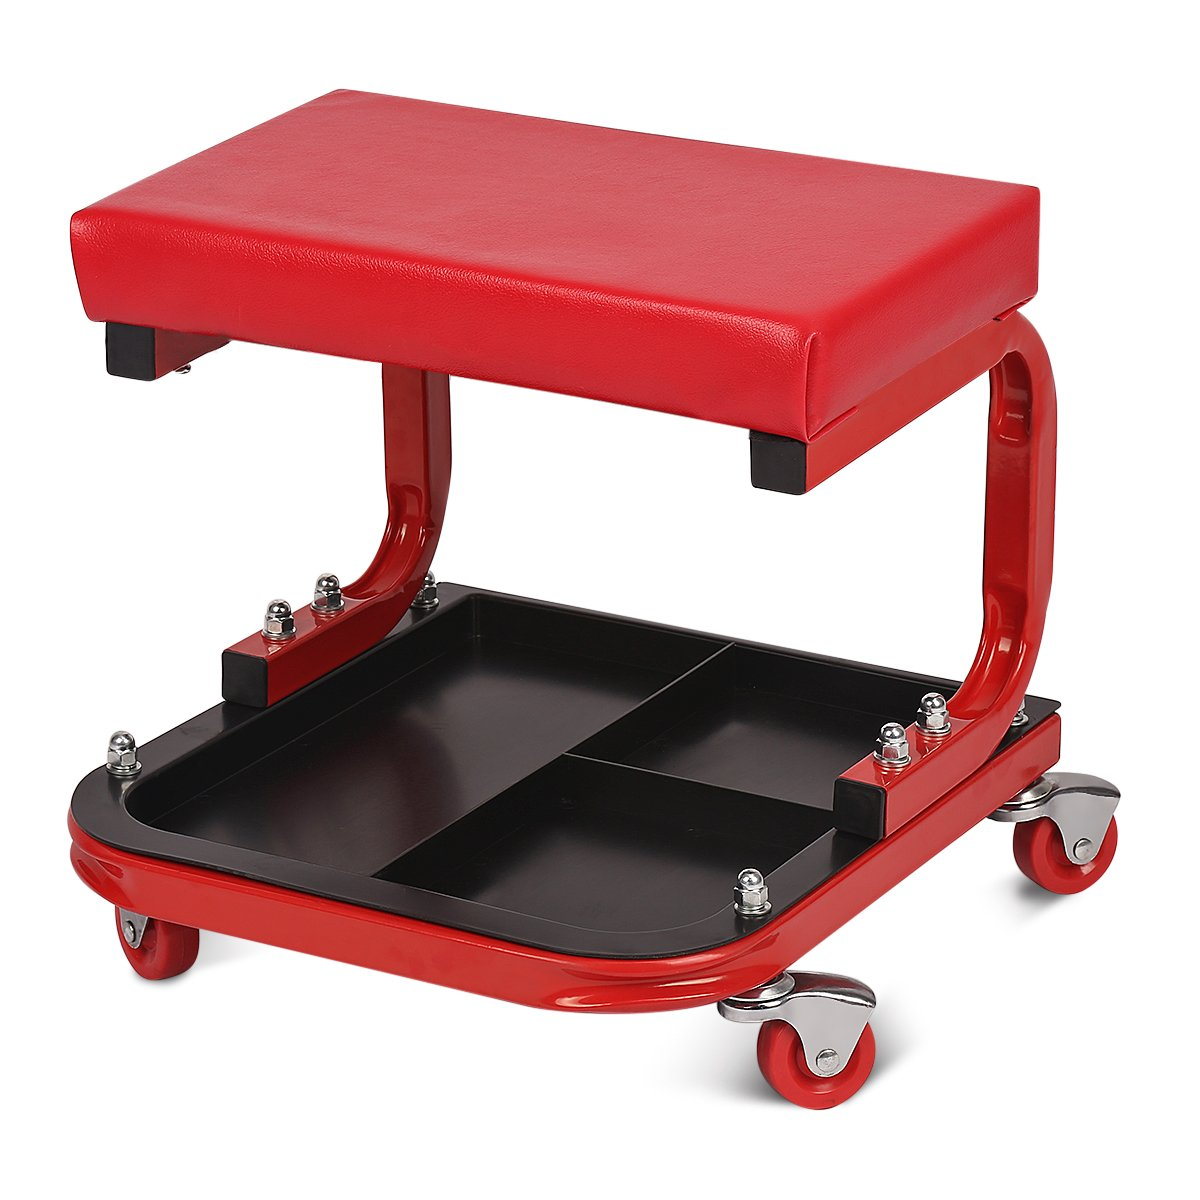 Excelvan TAS1403 Mechanics Creeper Seat Auto U Rolling Seat Stool Chair Garage Repair Stool (Capacity  sc 1 st  Amazon.com & Amazon.com: Roller Seats - Roller Seats u0026 Creepers: Automotive islam-shia.org